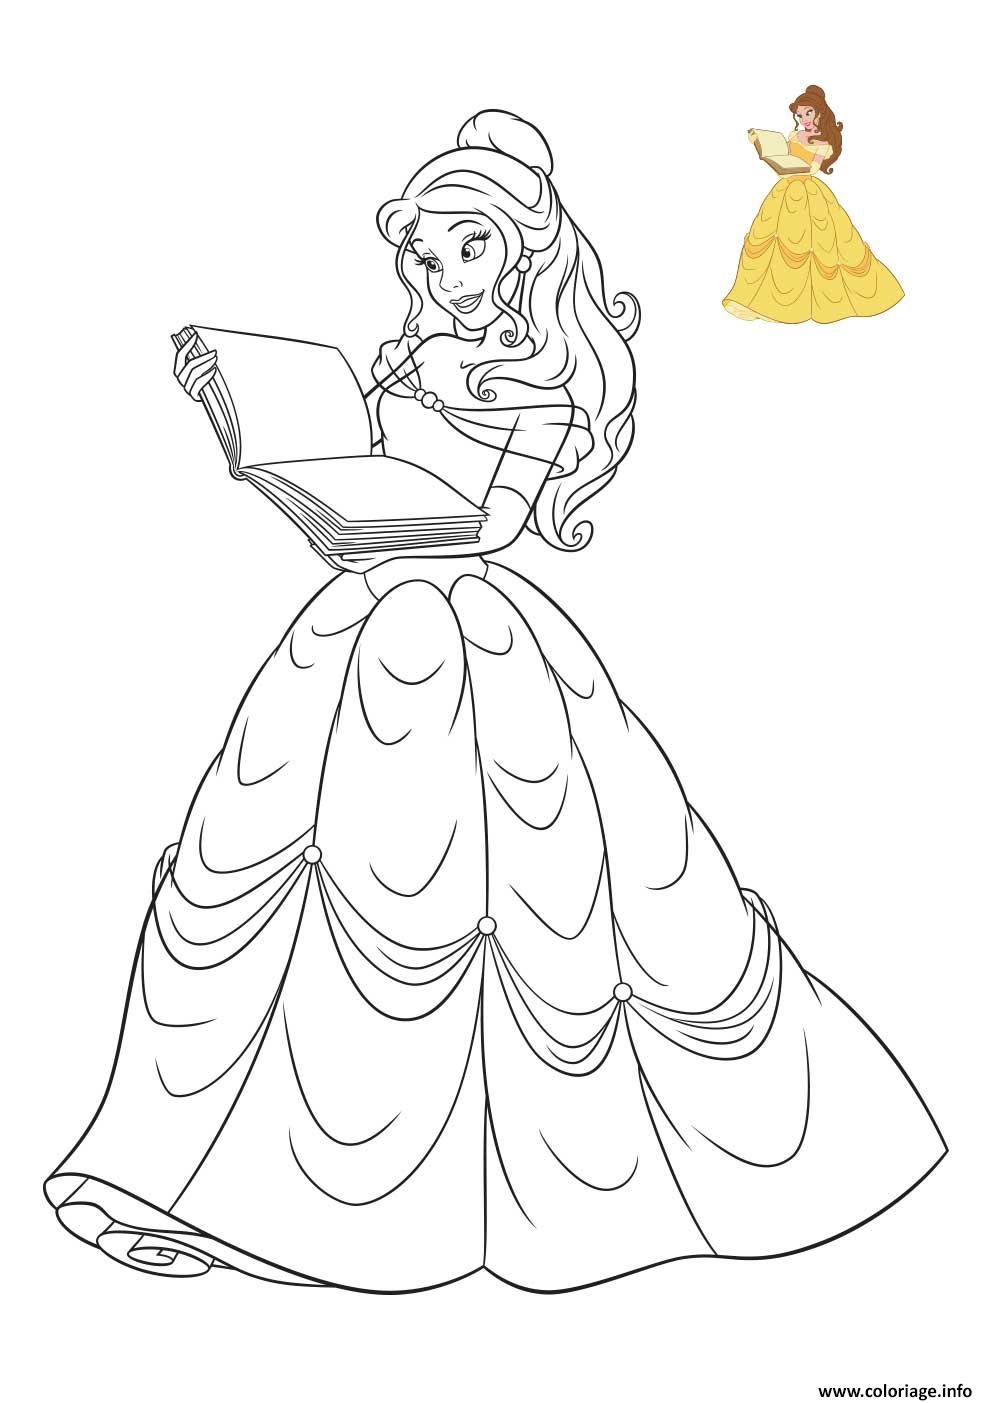 Coloriage princesse disney la belle et la bete dessin - Coloriages a colorier ...